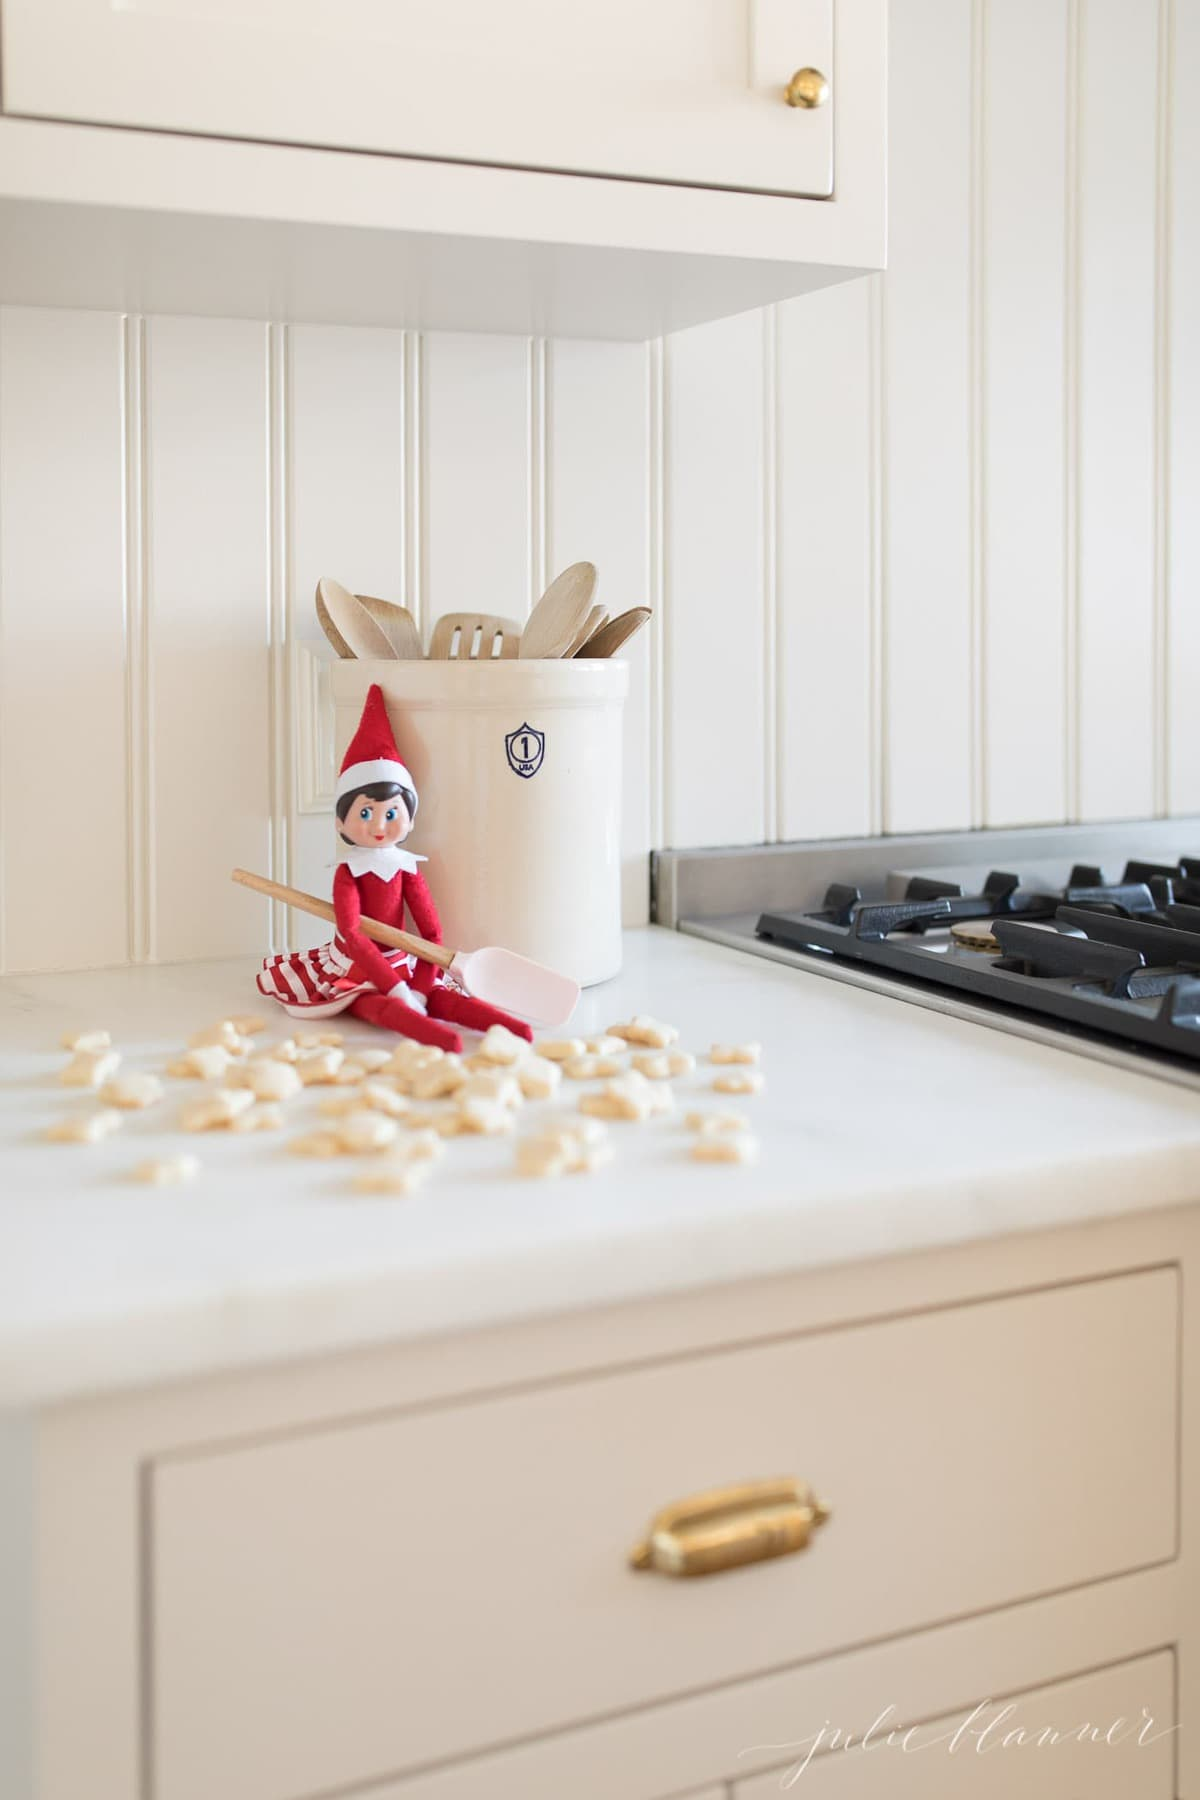 Mini cookies in front of a elf on the shelf